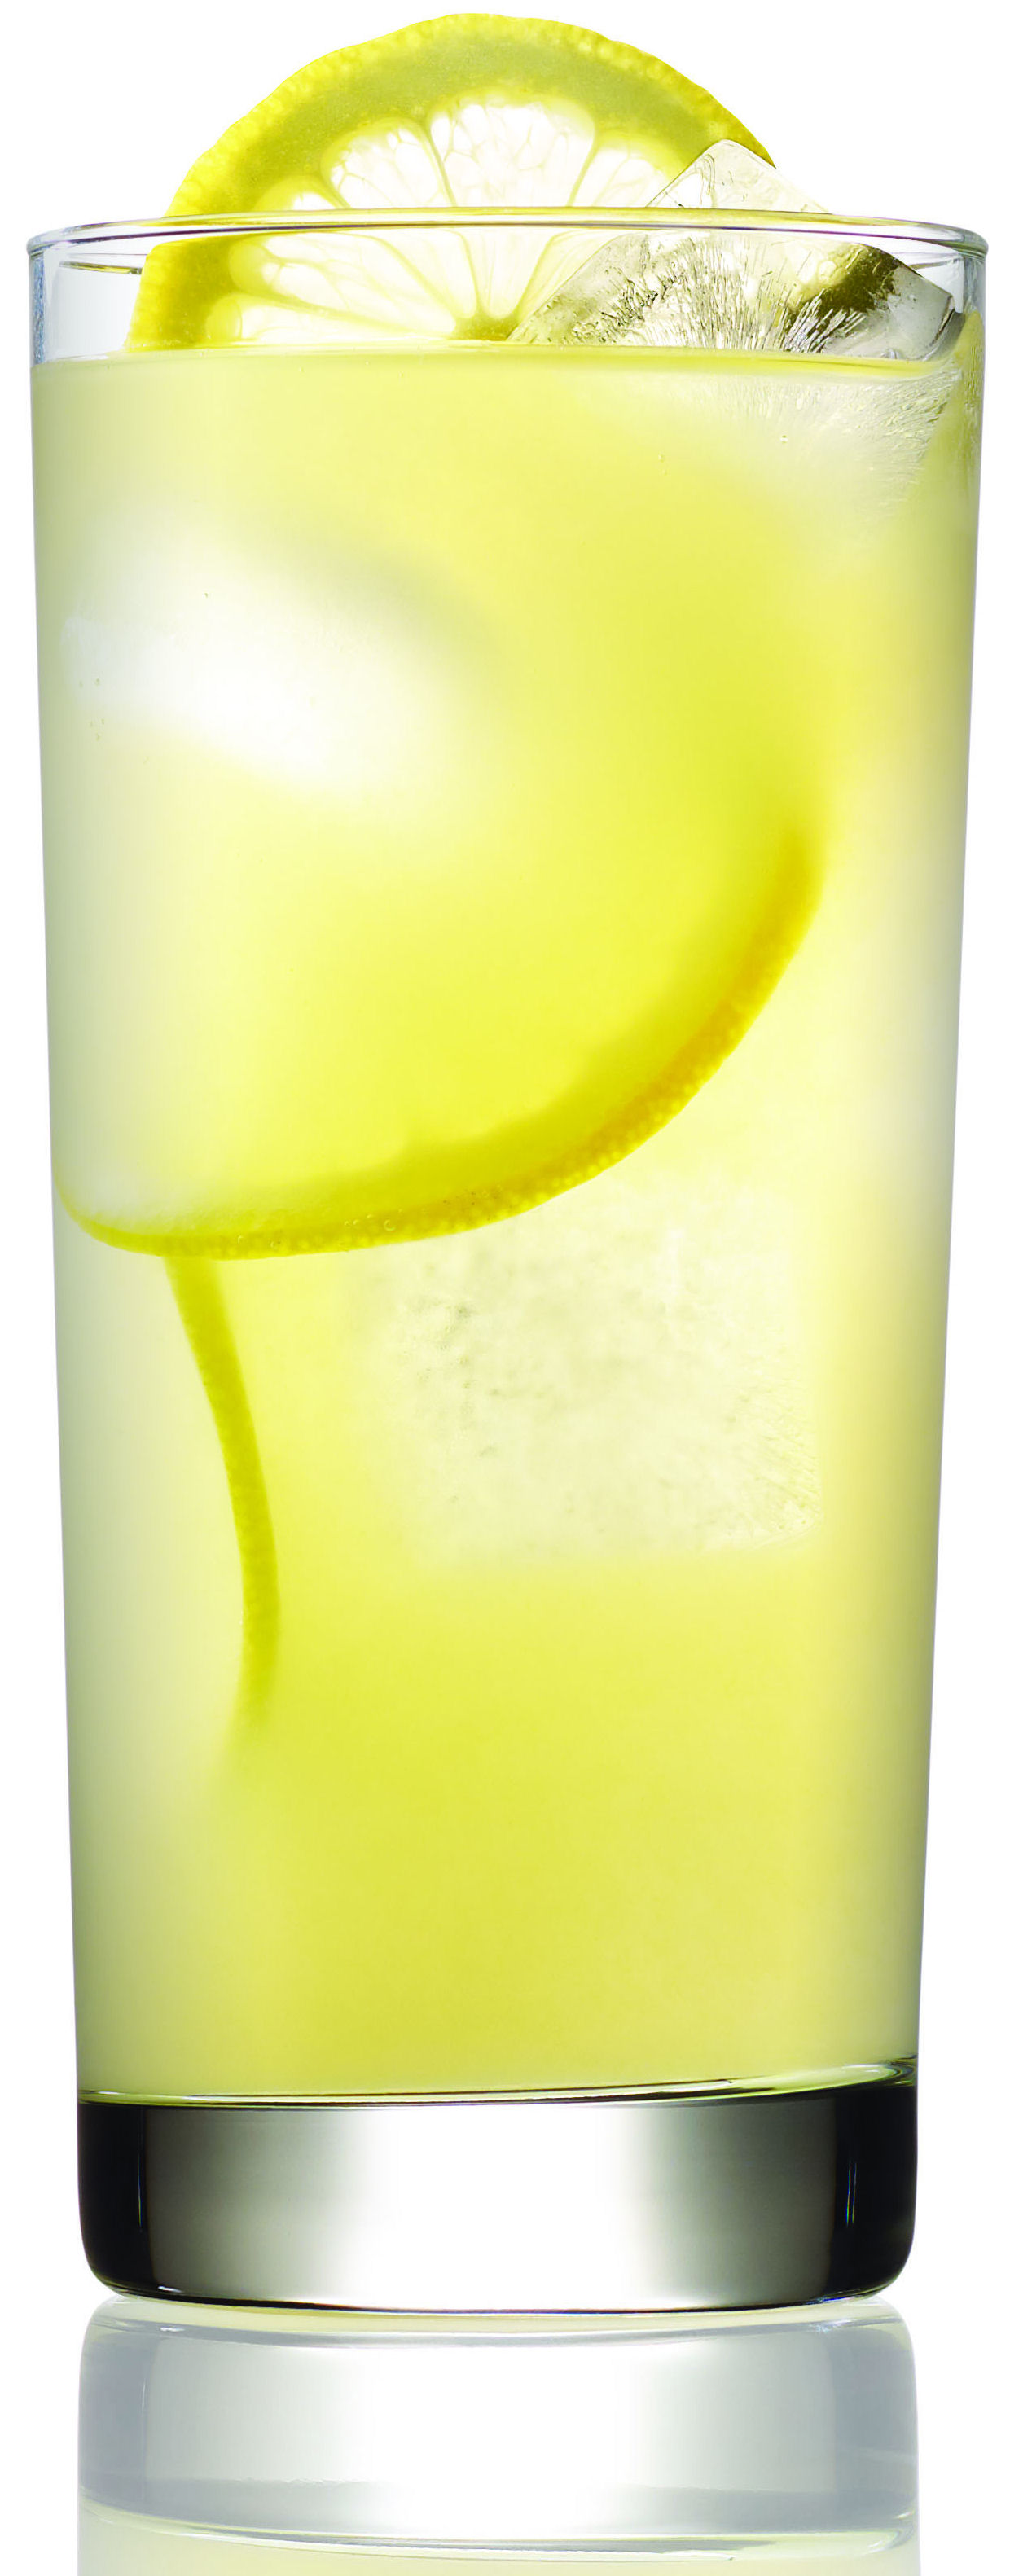 Lemonade cocktail drink recipe